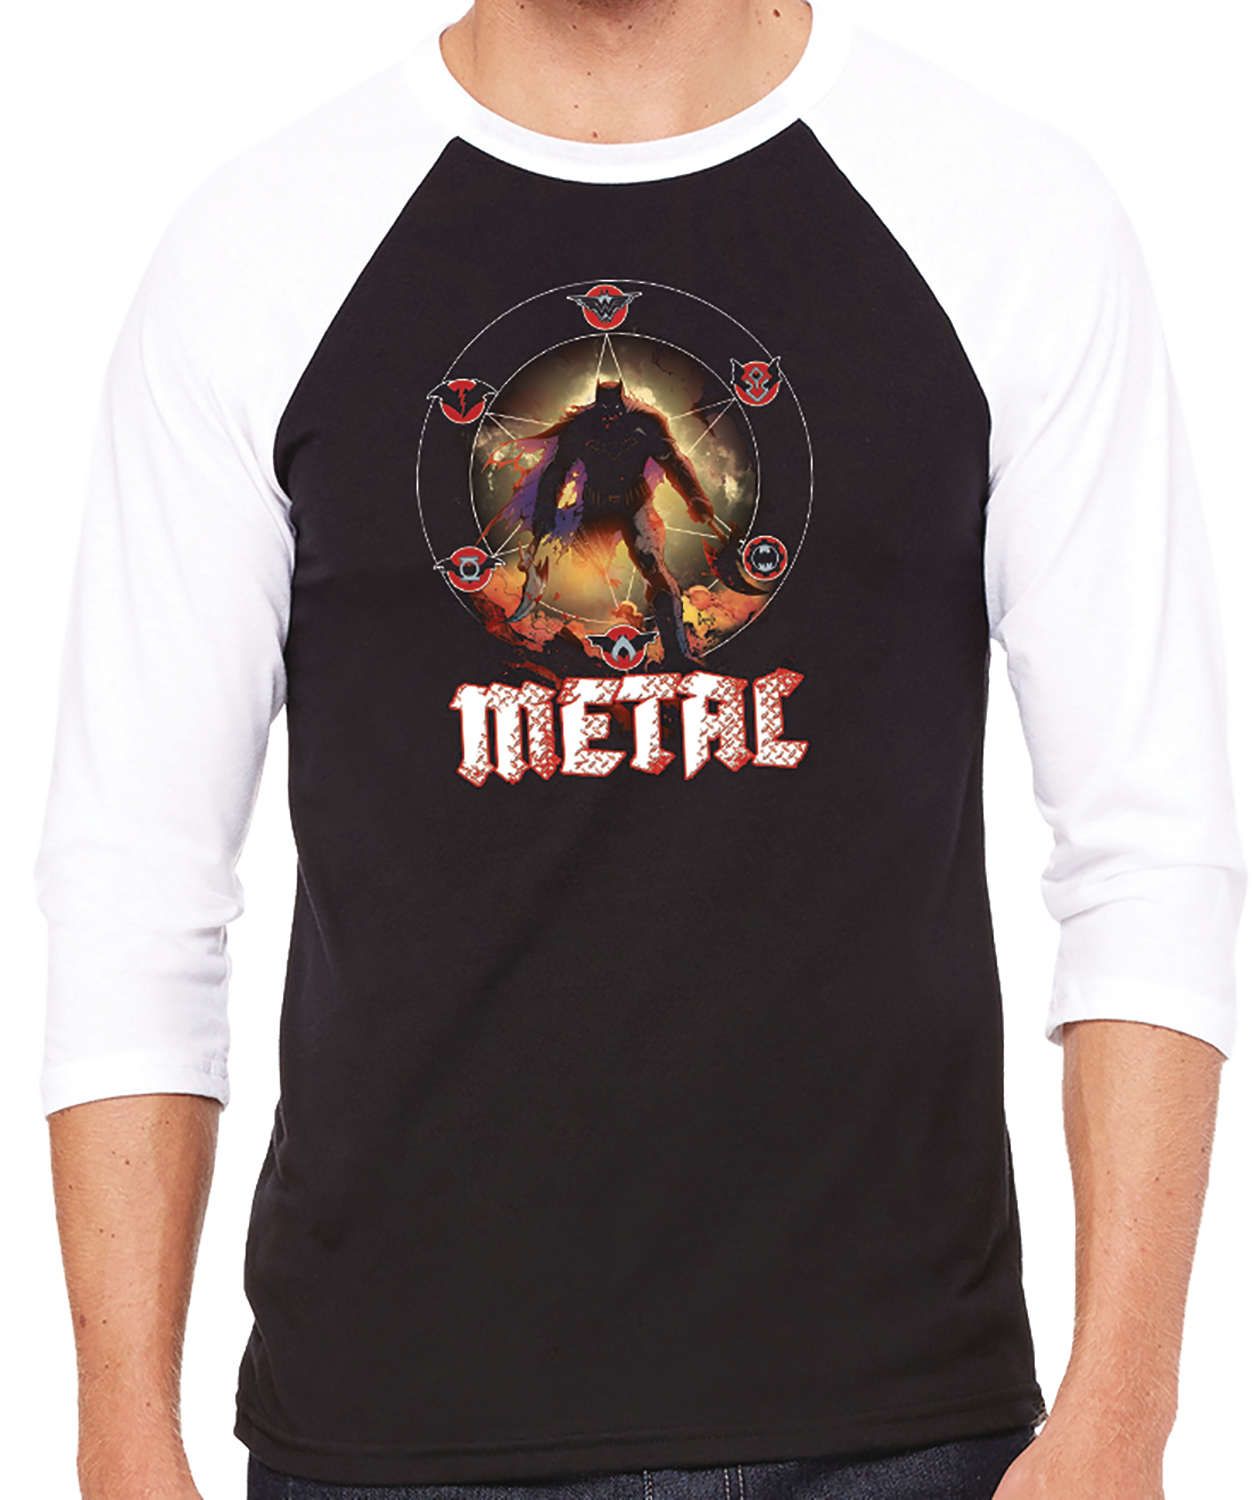 DARK NIGHTS METAL TOUR BASEBALL SHIRT MED